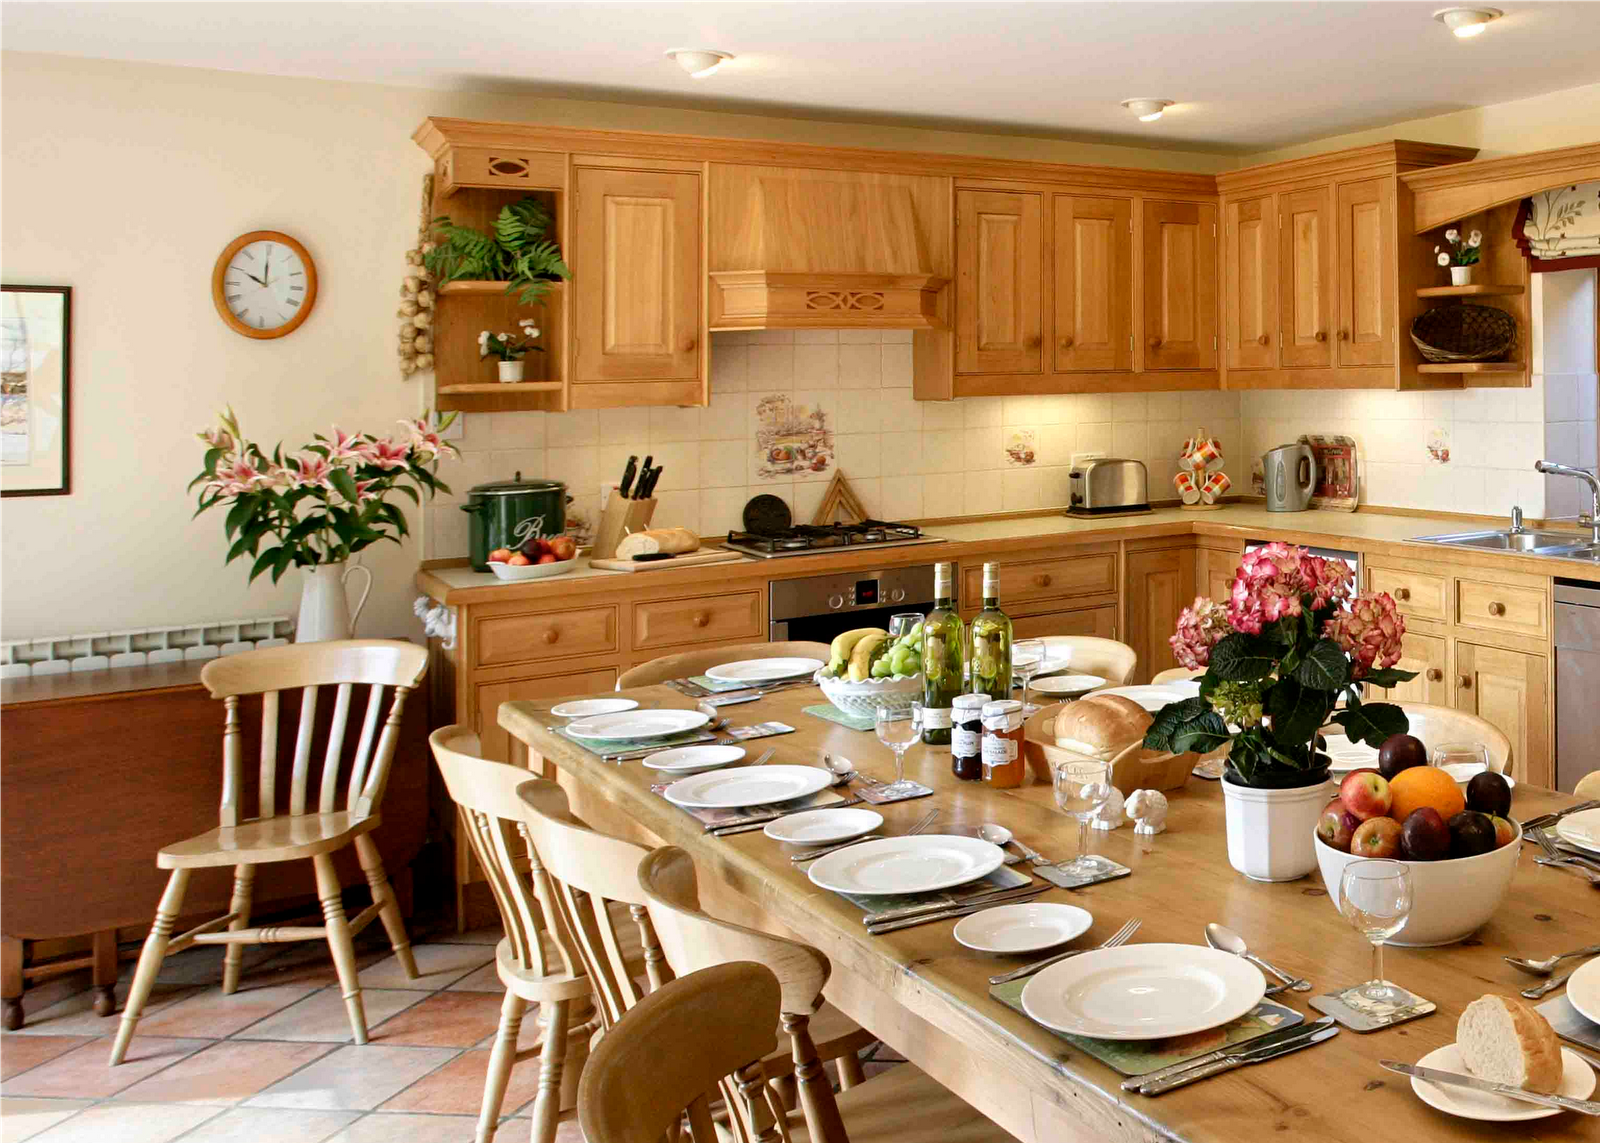 Vintage Yellow Country Kitchen English Country Kitchen Design Ideas English Country Kitchen